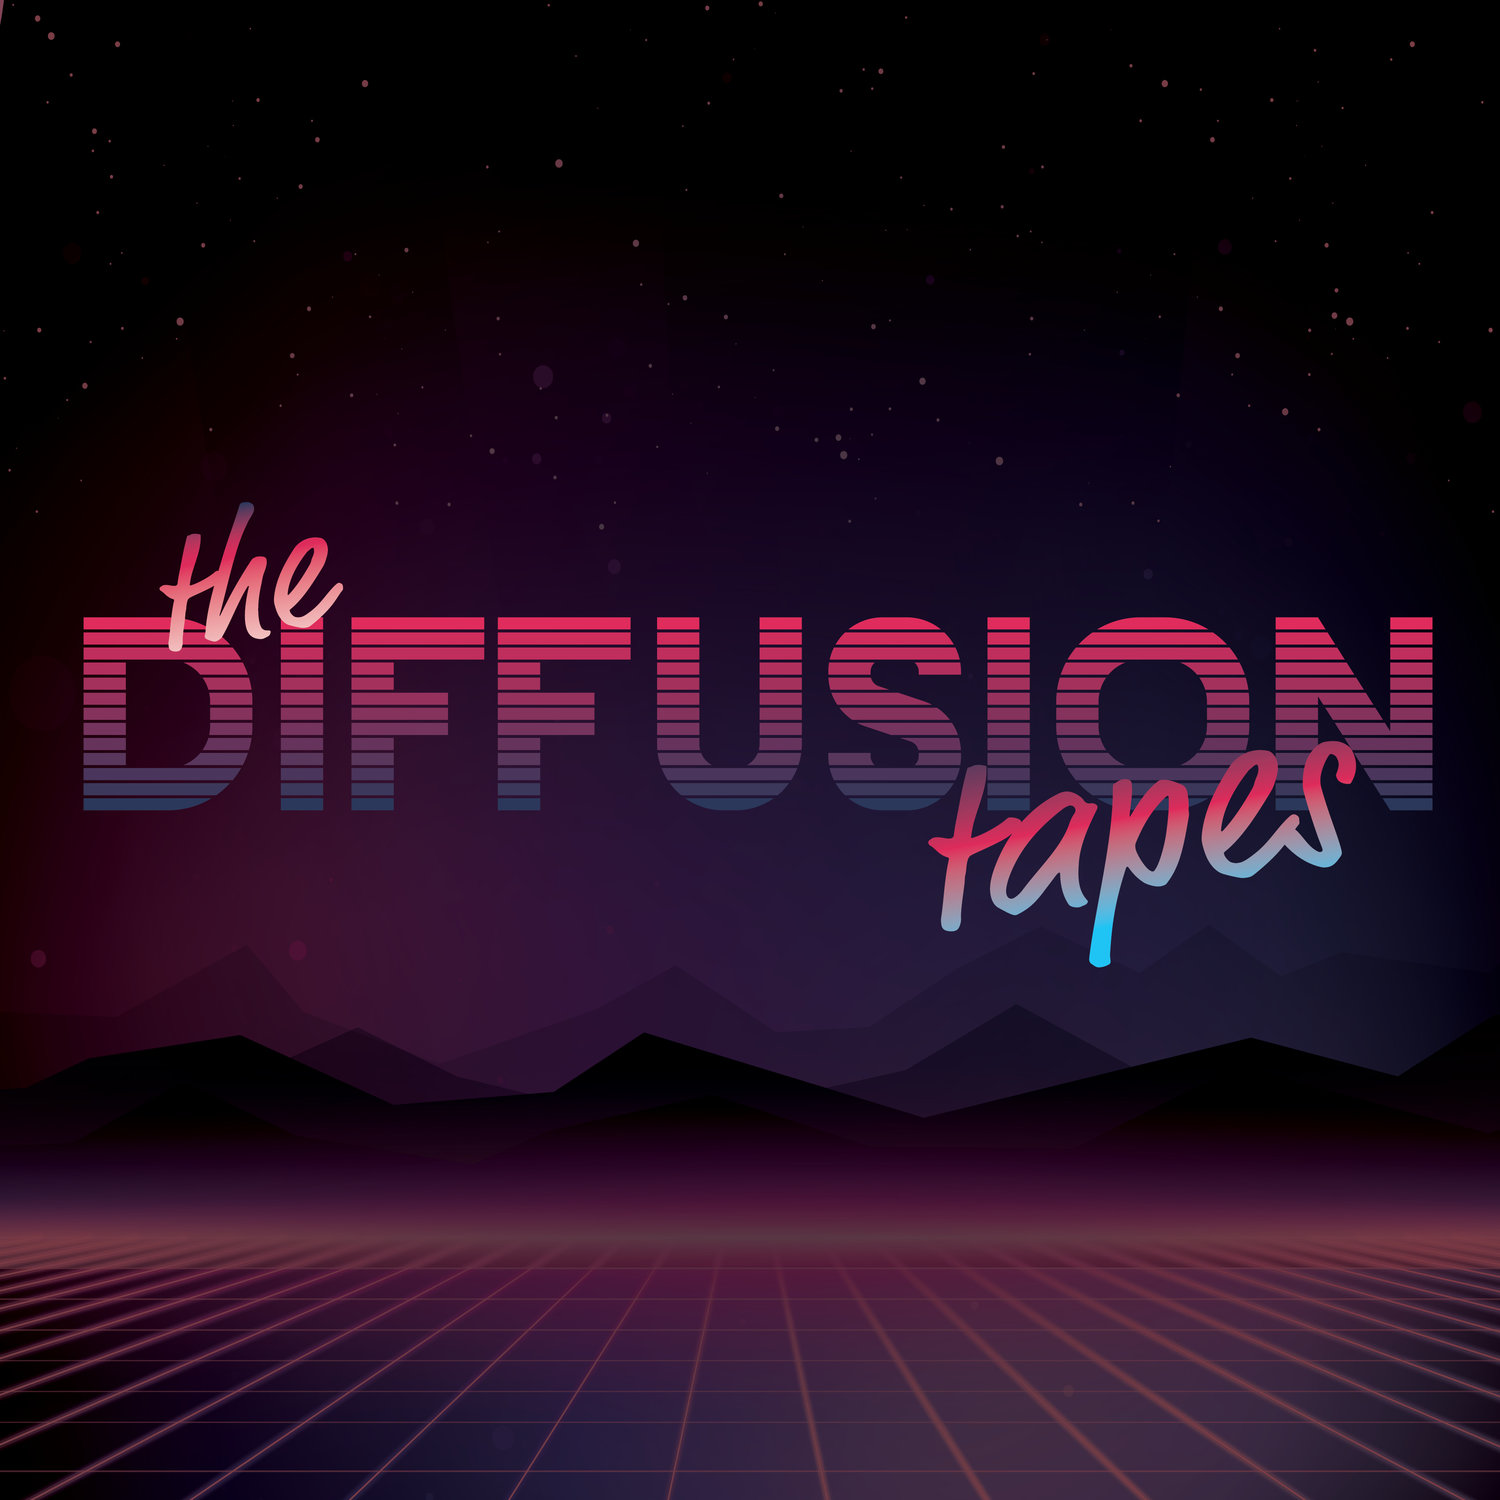 Teaser: The Diffusion Tapes.